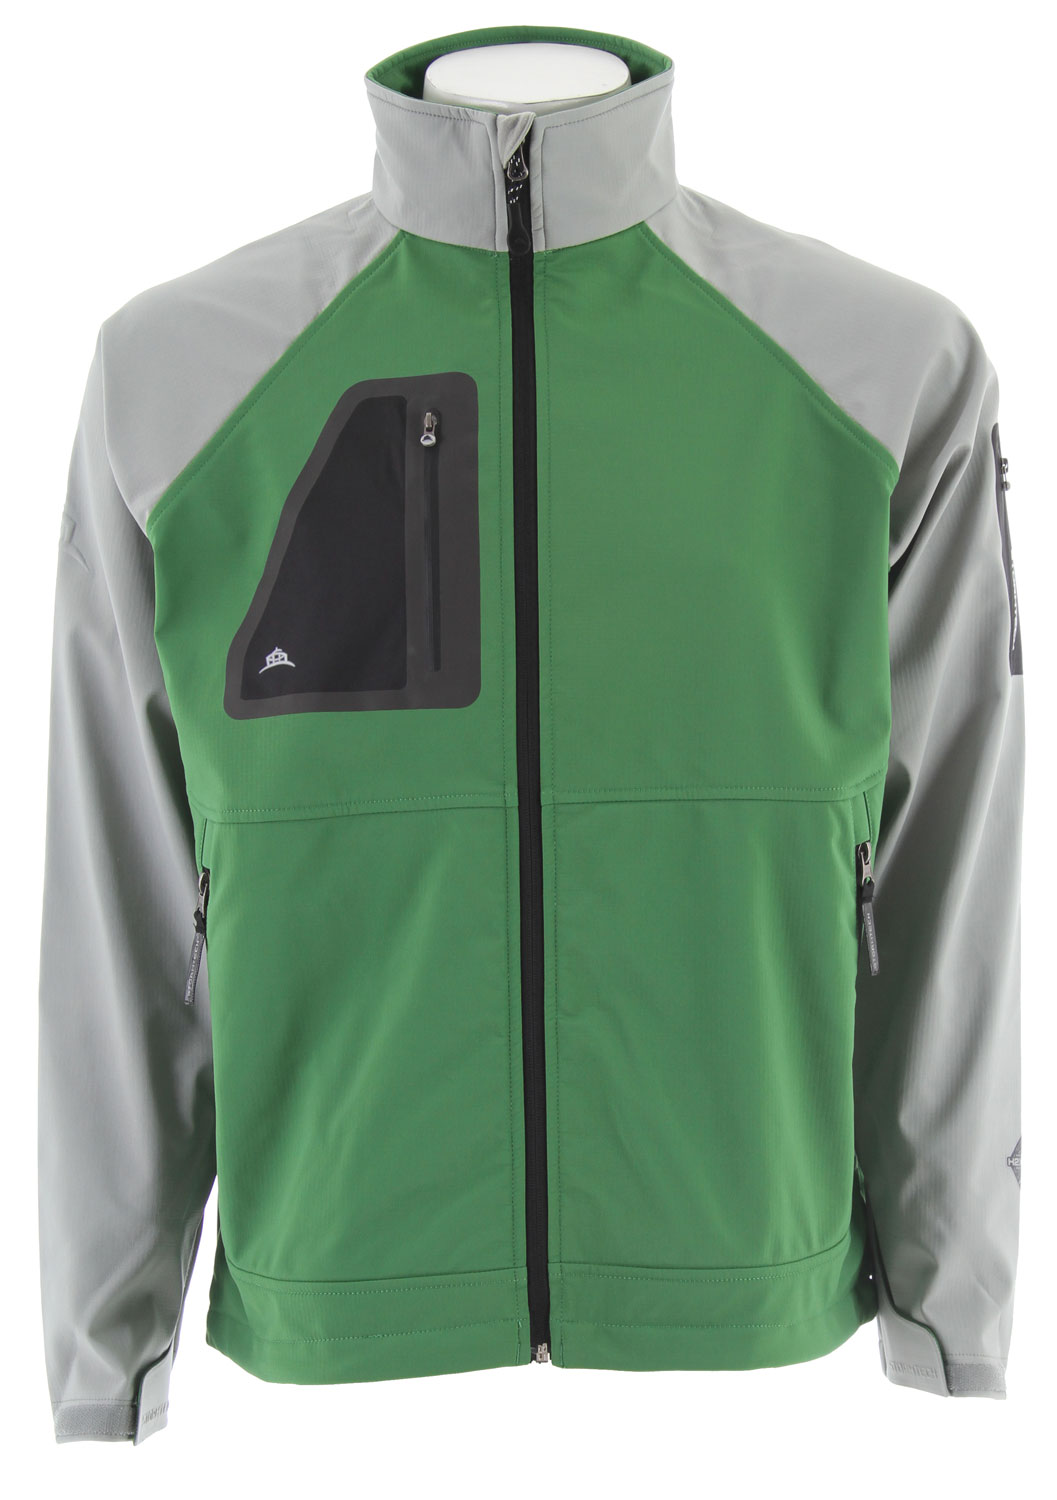 If highly aerobic three season activities are what keep you going, a softshell that is waterproof, breathable, and slightly stretchy is crucial for optimum comfort. The Aeros H2extreme Shell can be worn alone for a weatherproof barrier or layered during the thick of the season.Key Features for the Stormtech Aeros H2xtreme Shell Jacket: 8,000mm Waterproof 5,000g Breathability Embossed Logo Detailing on Right Sleeve Waterproof Chest and Bicep Pocket Chest Pocket with Audio Port - $44.95